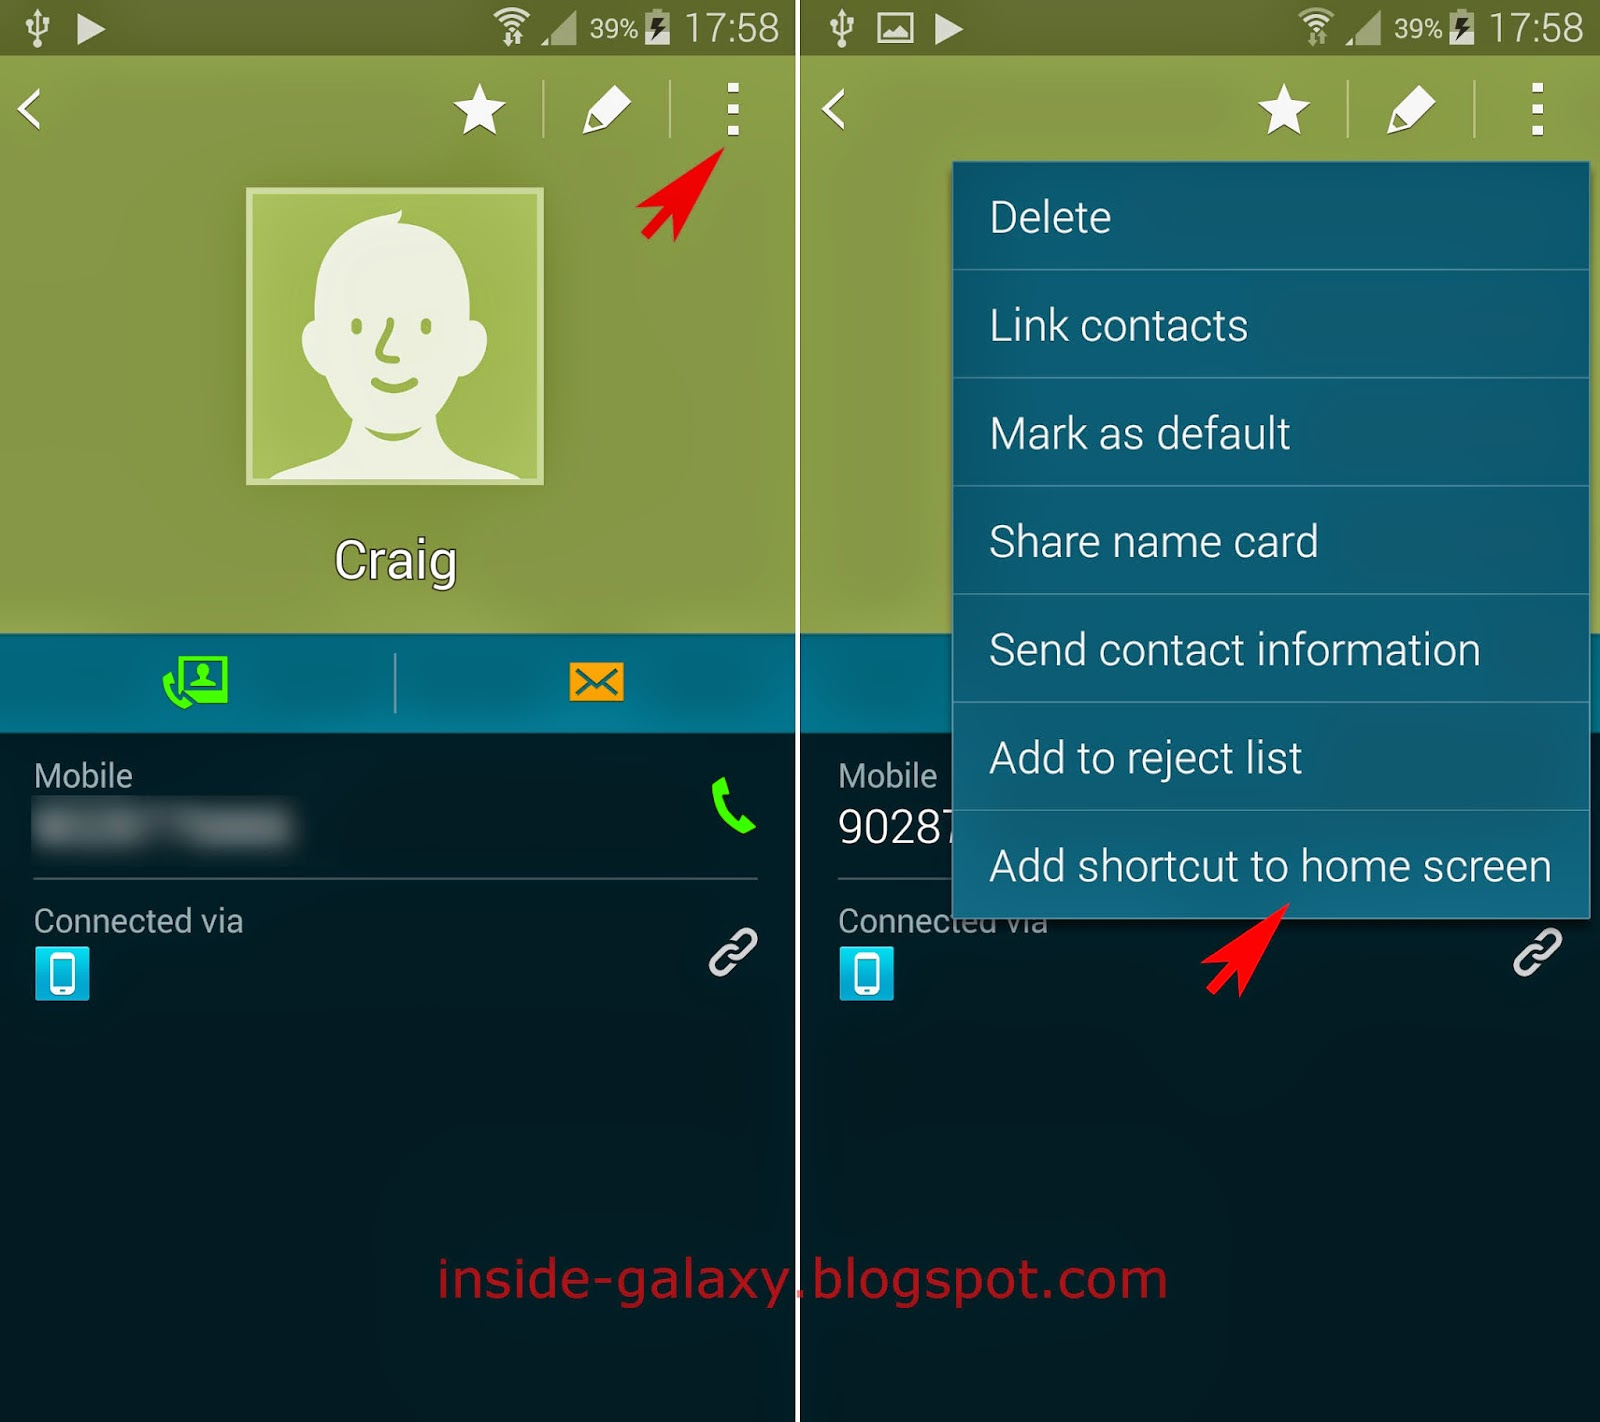 Samsung Galaxy S5: How to Add a Contact Shortcut to Home